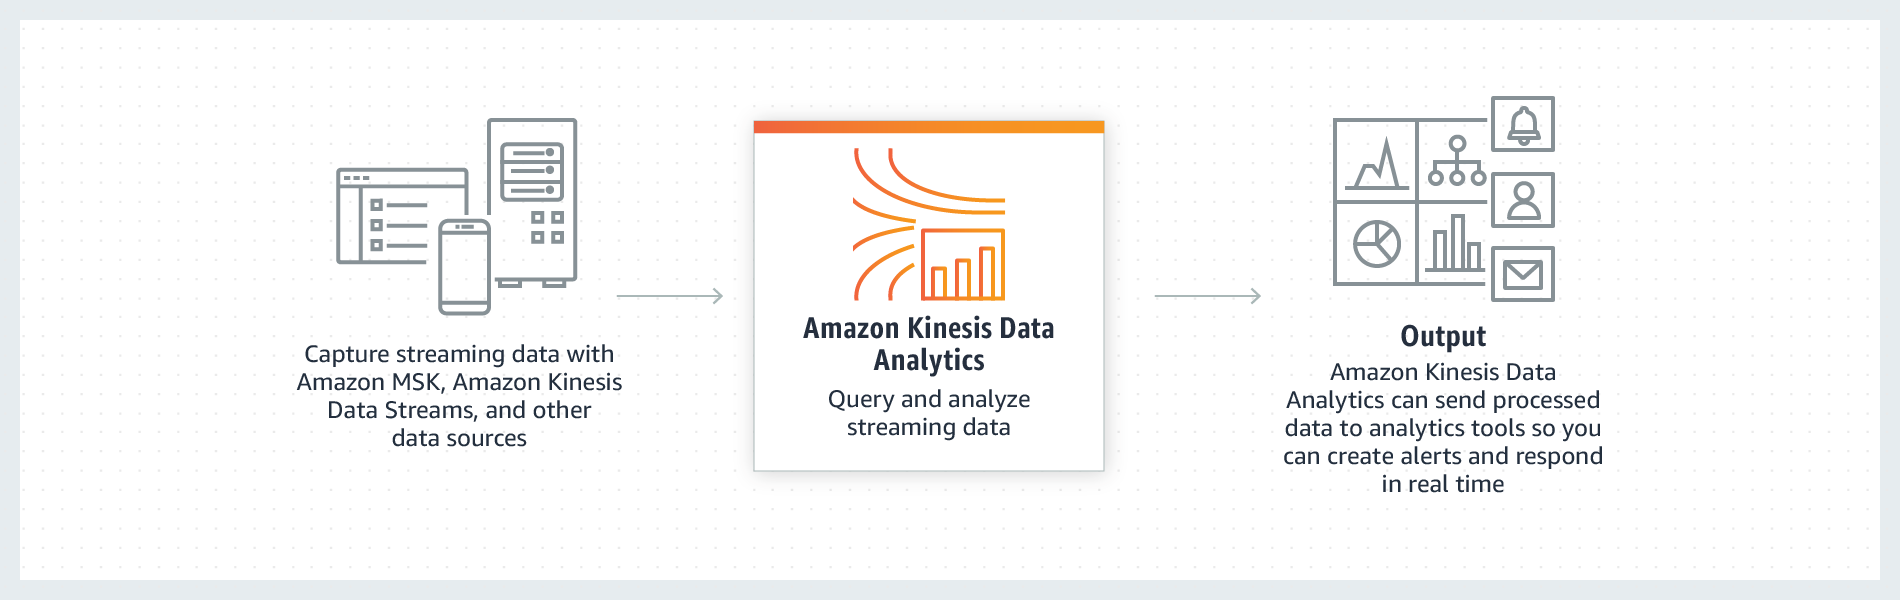 How Amazon Kinesis Data Analytics works